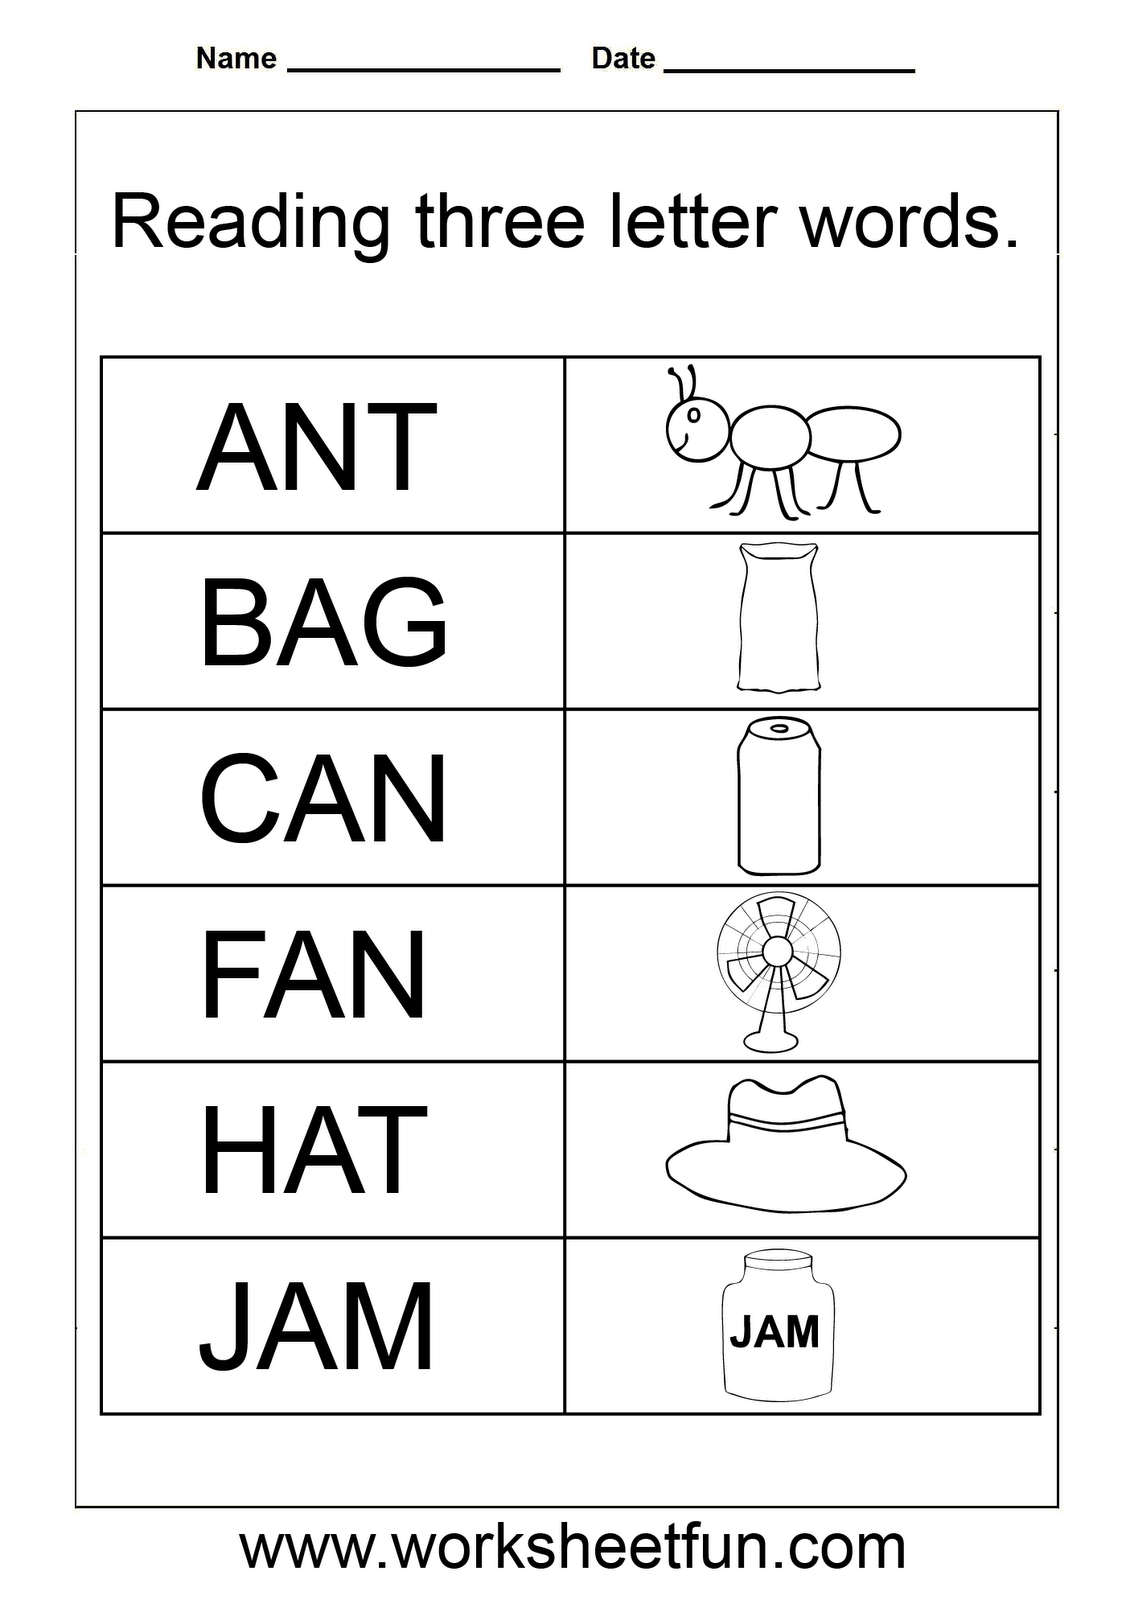 image result for nursery spelling worksheets ansh pinterest worksheets spelling. Black Bedroom Furniture Sets. Home Design Ideas